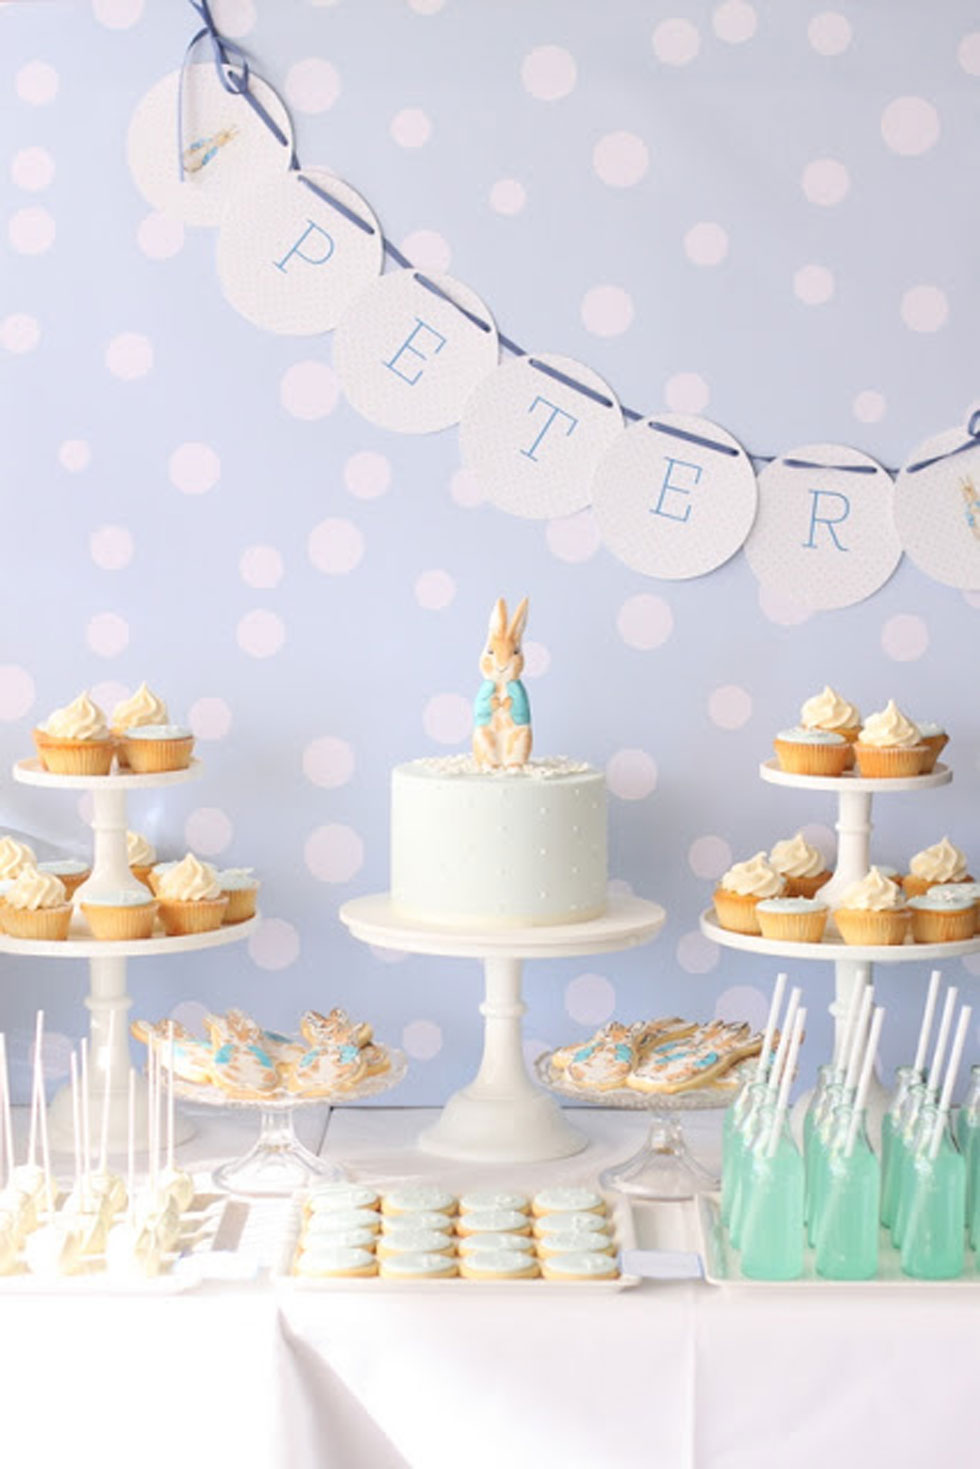 30+ Baby Shower Ideas For Boys And Girls   Baby Shower Food And Decorations